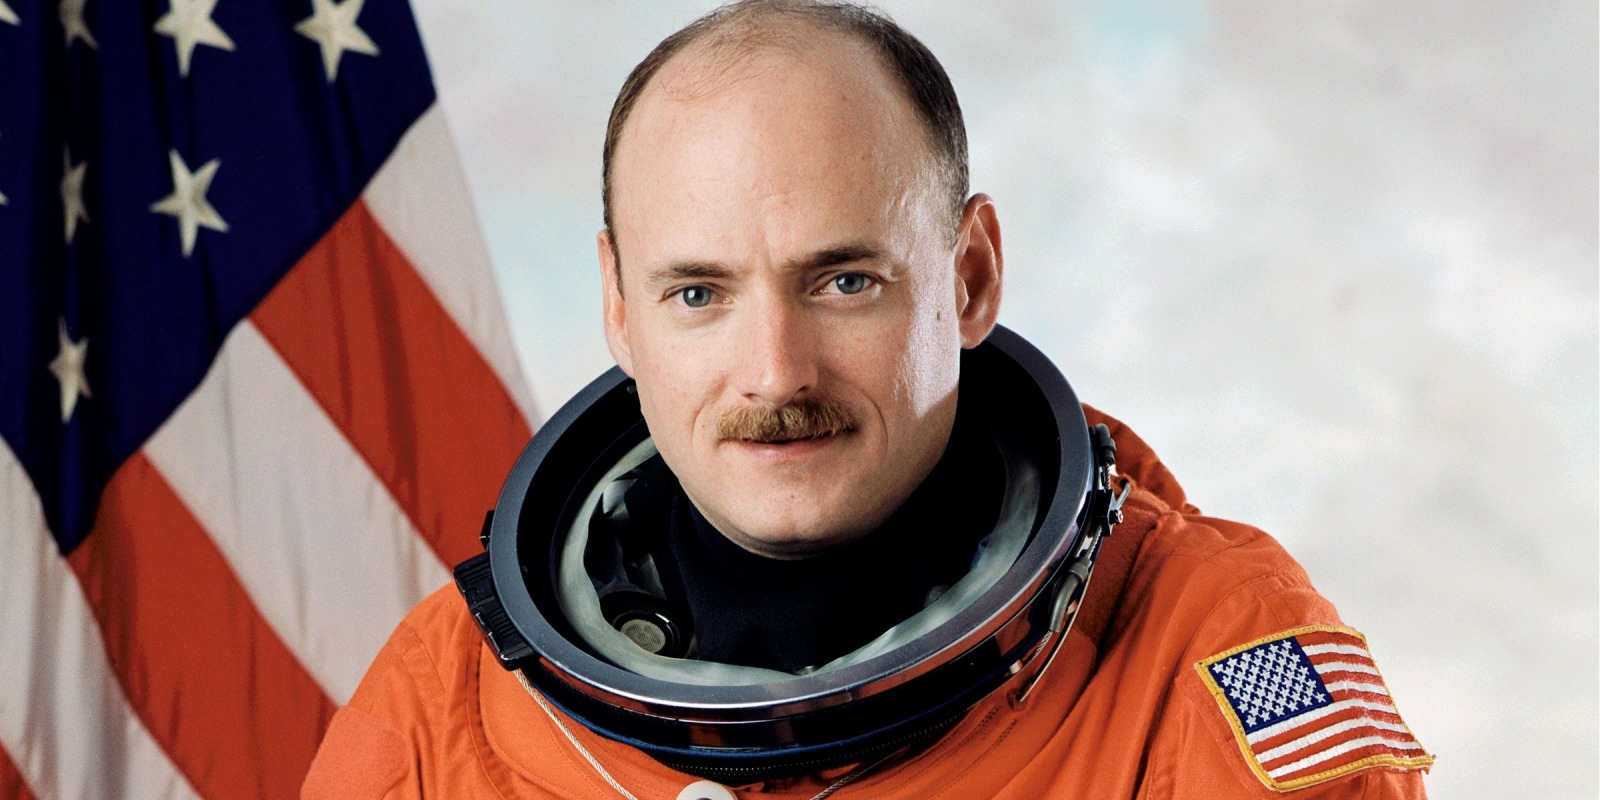 scott kelly Some reports have exaggerated the effect a year in space has had on astronaut scott kelly's genes.